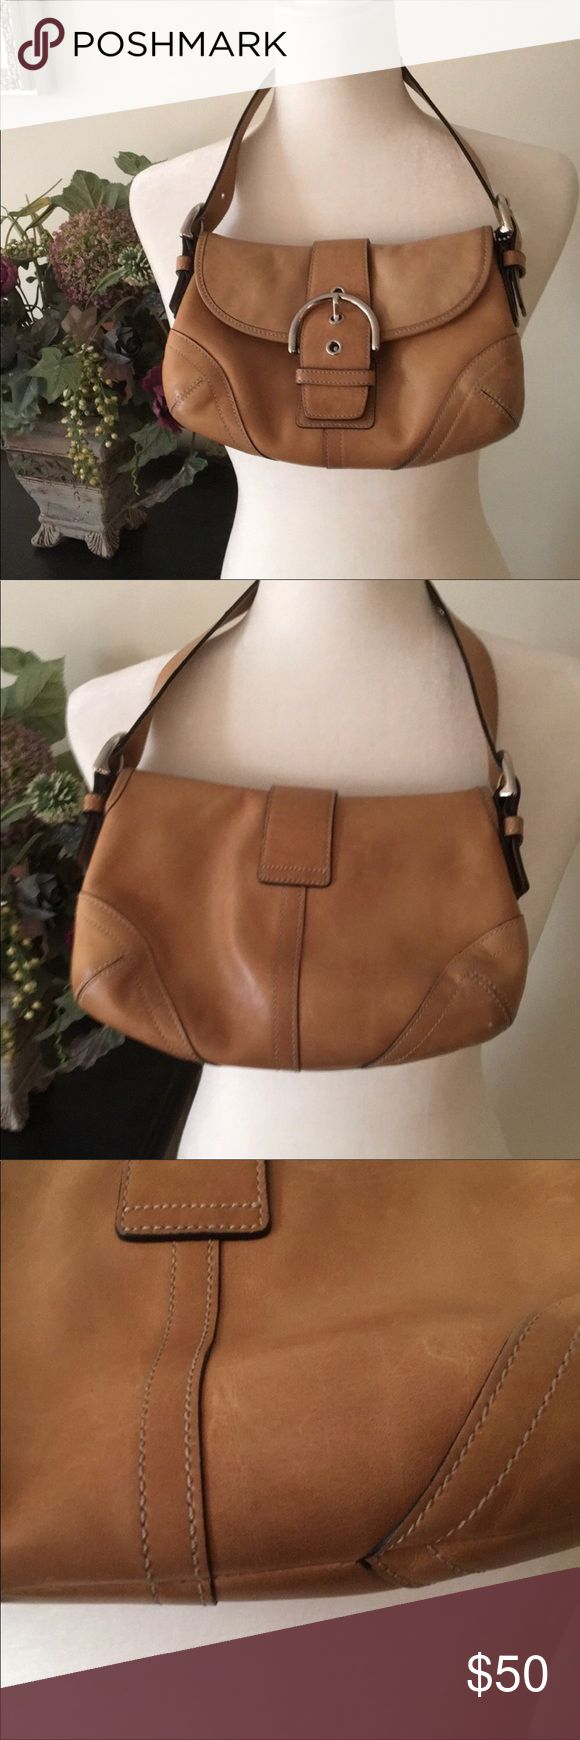 Classic Brown Leather Coach Retail Purse Bag Coach Purse. Measures 10 by 6.5. Excellent gently used. Silver metal and brown tan leather. Purchased at retail store. Coach Bags Shoulder Bags